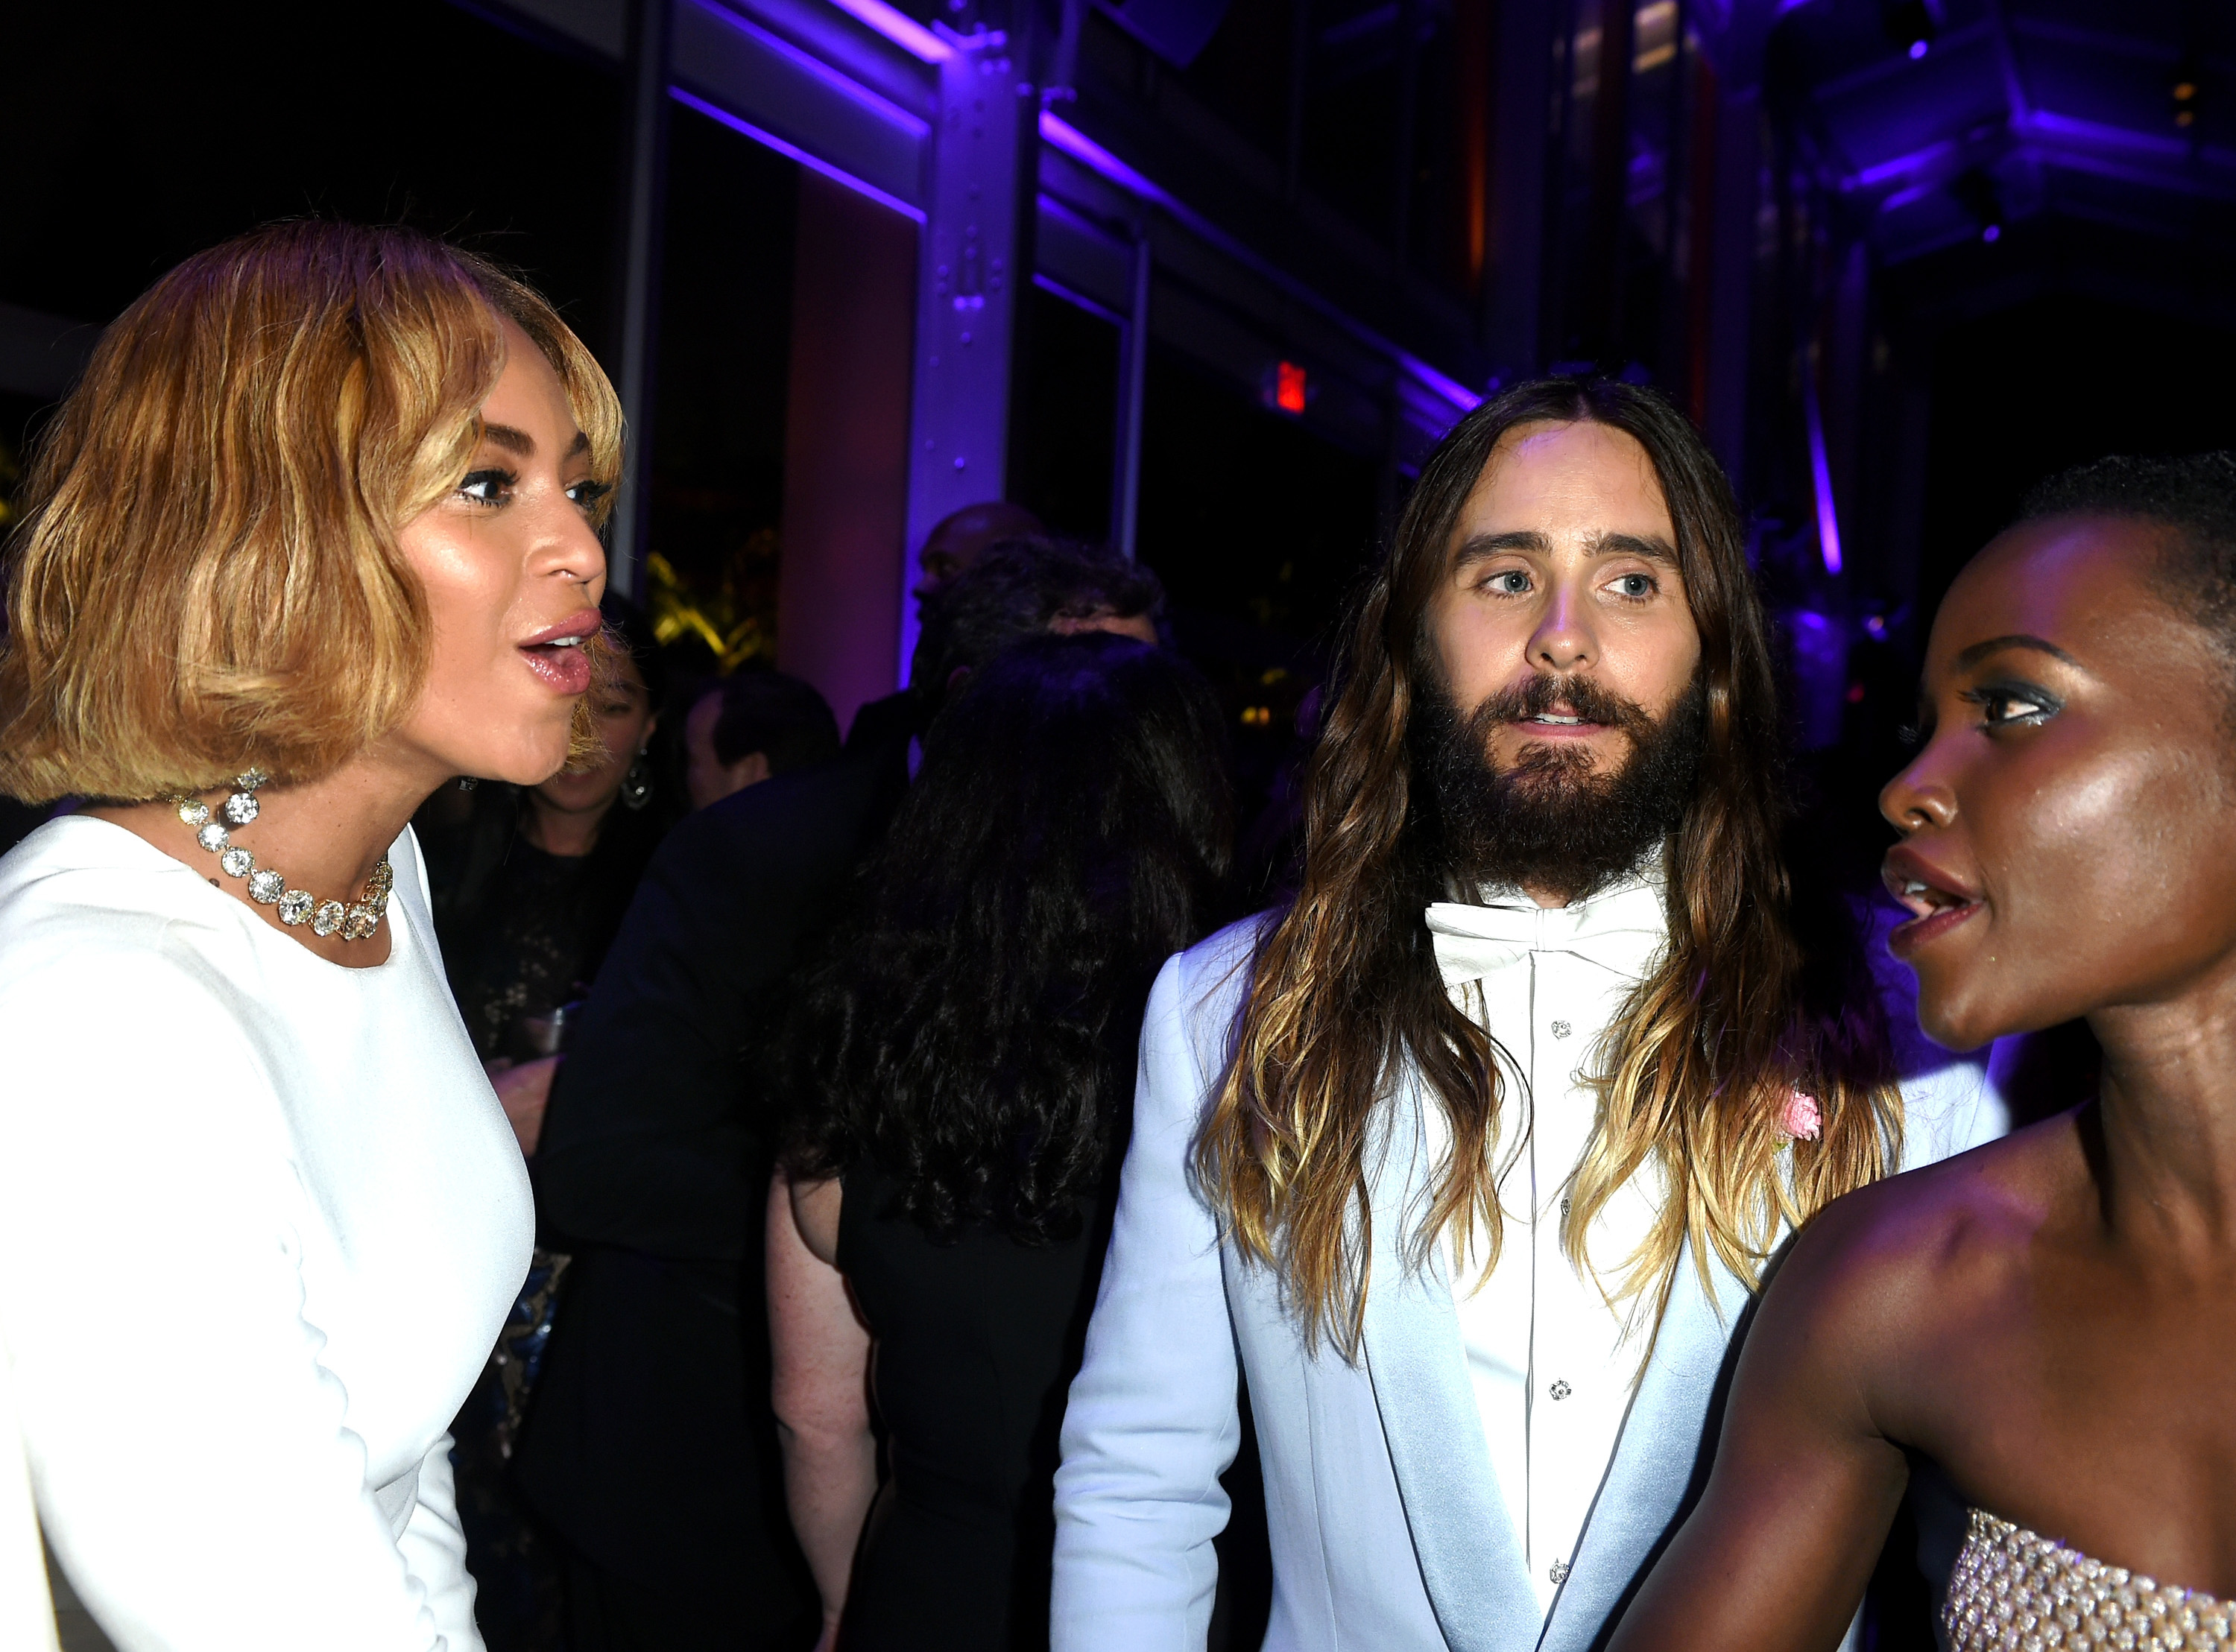 BEVERLY HILLS, CA - FEBRUARY 22:  (EXCLUSIVE ACCESS, SPECIAL RATES APPLY) (L-R) Recording artist Beyonce, actor Jared Leto an